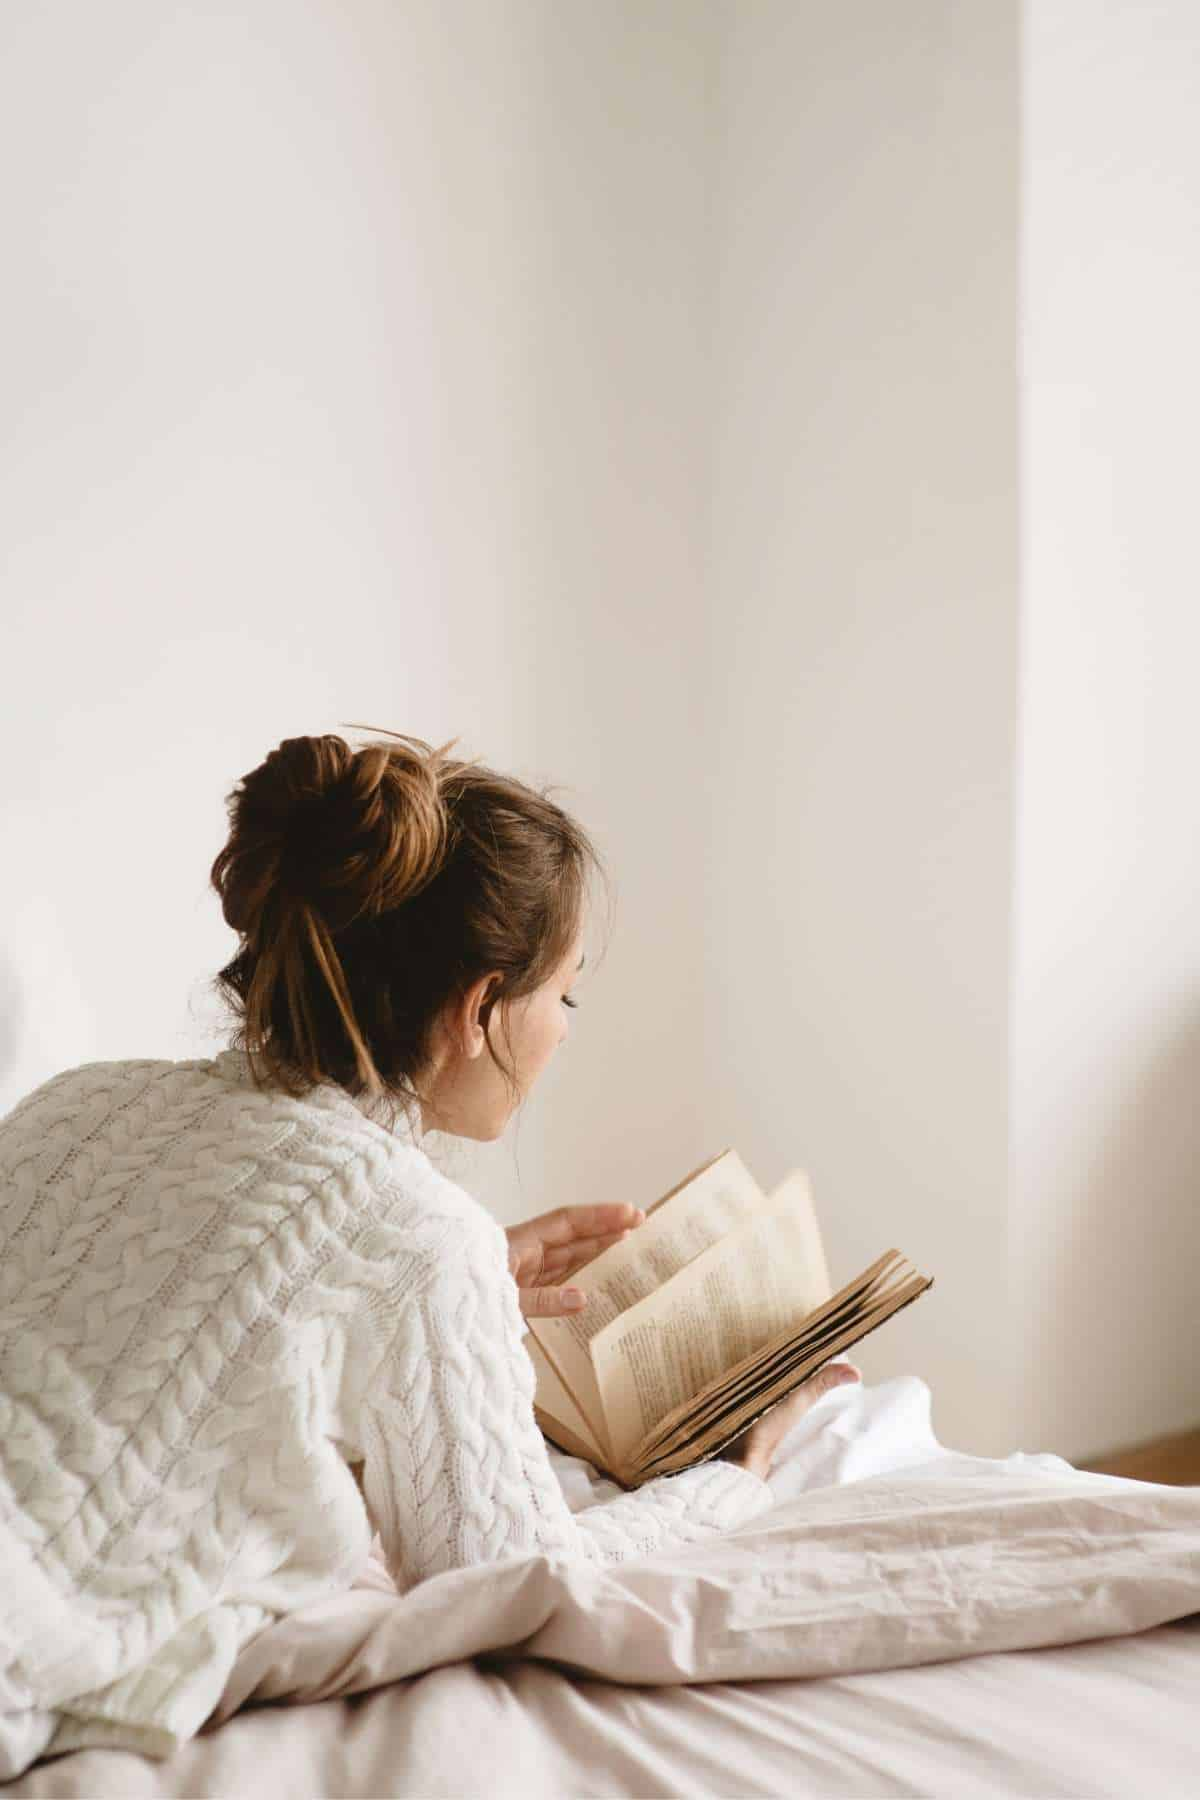 woman reading on bed looking away from camera